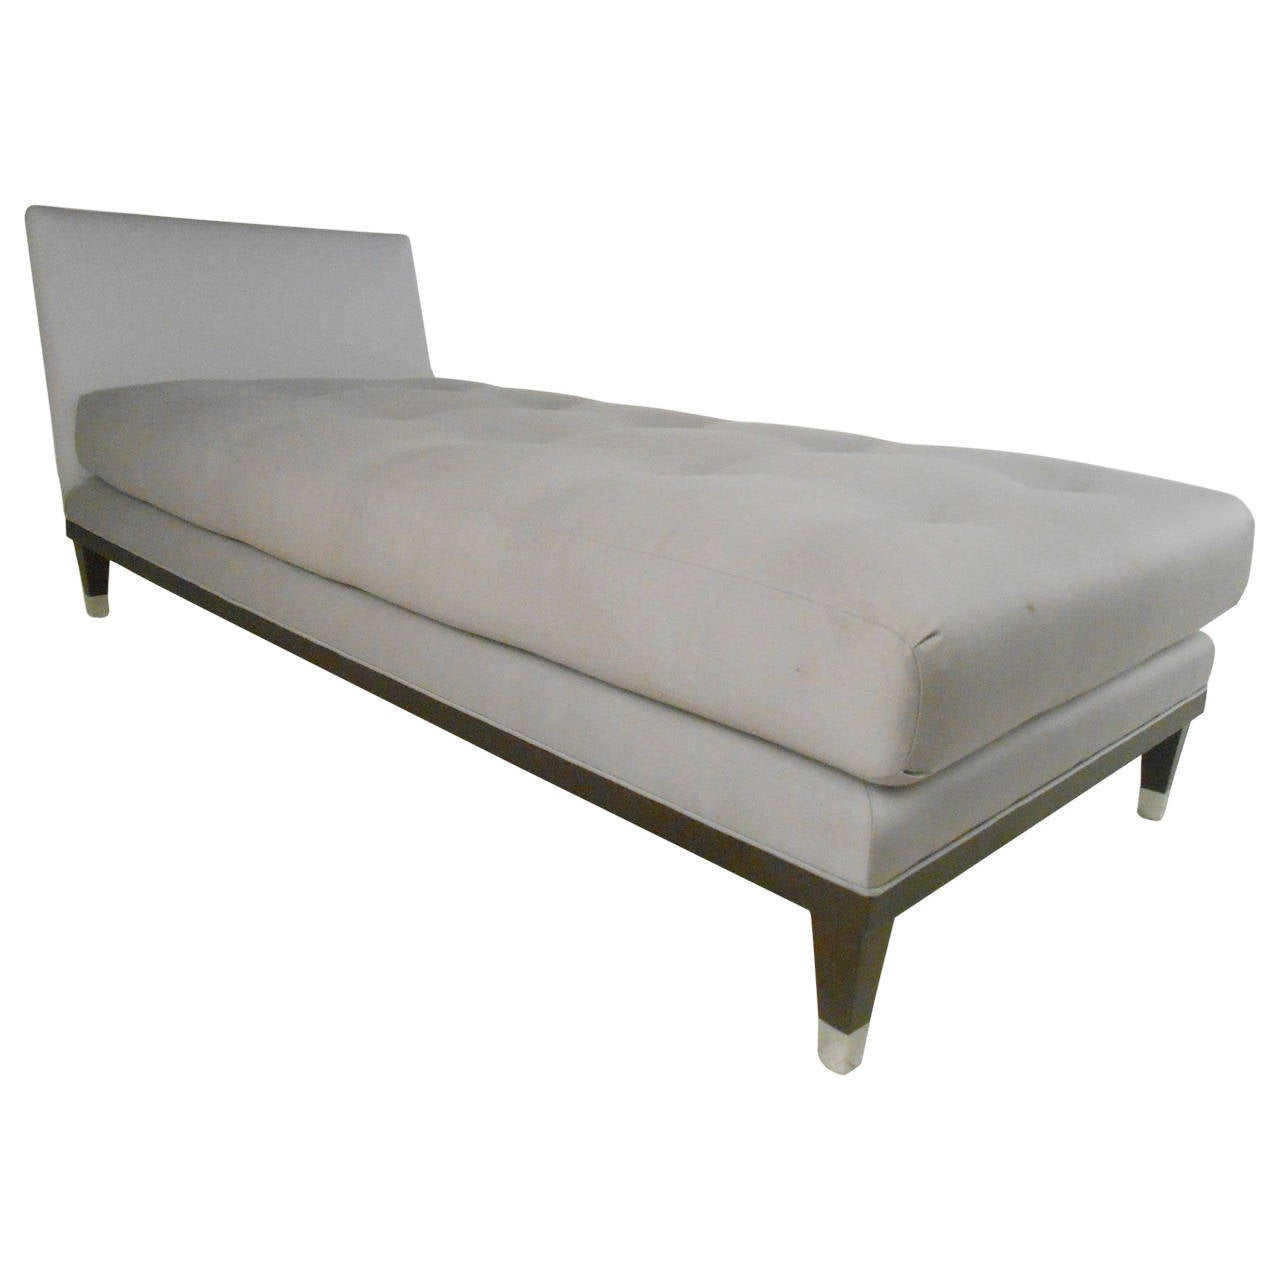 Contemporary chaise lounge contemporary barcelona style for Chaise longue lounge